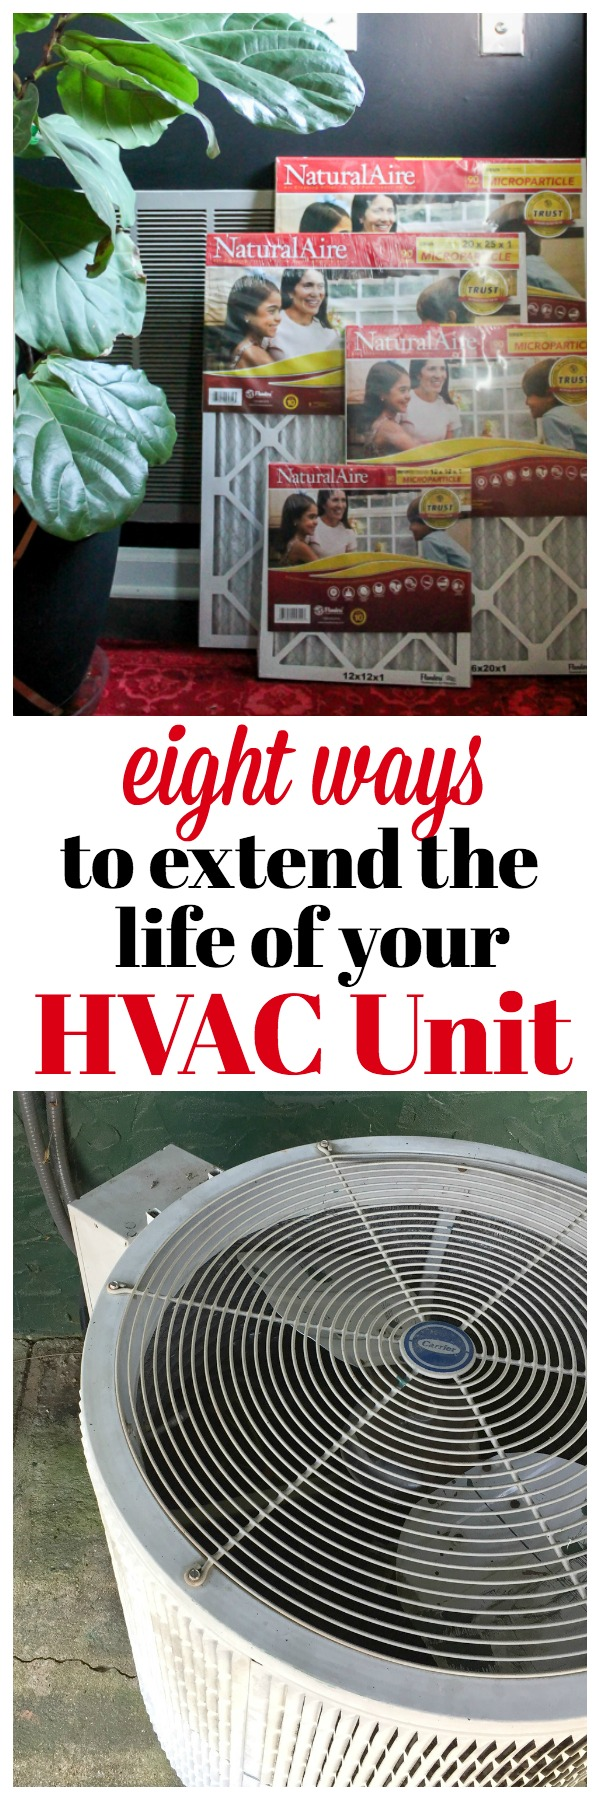 Eight Ways to Extend the Life of Your HVAC Unit